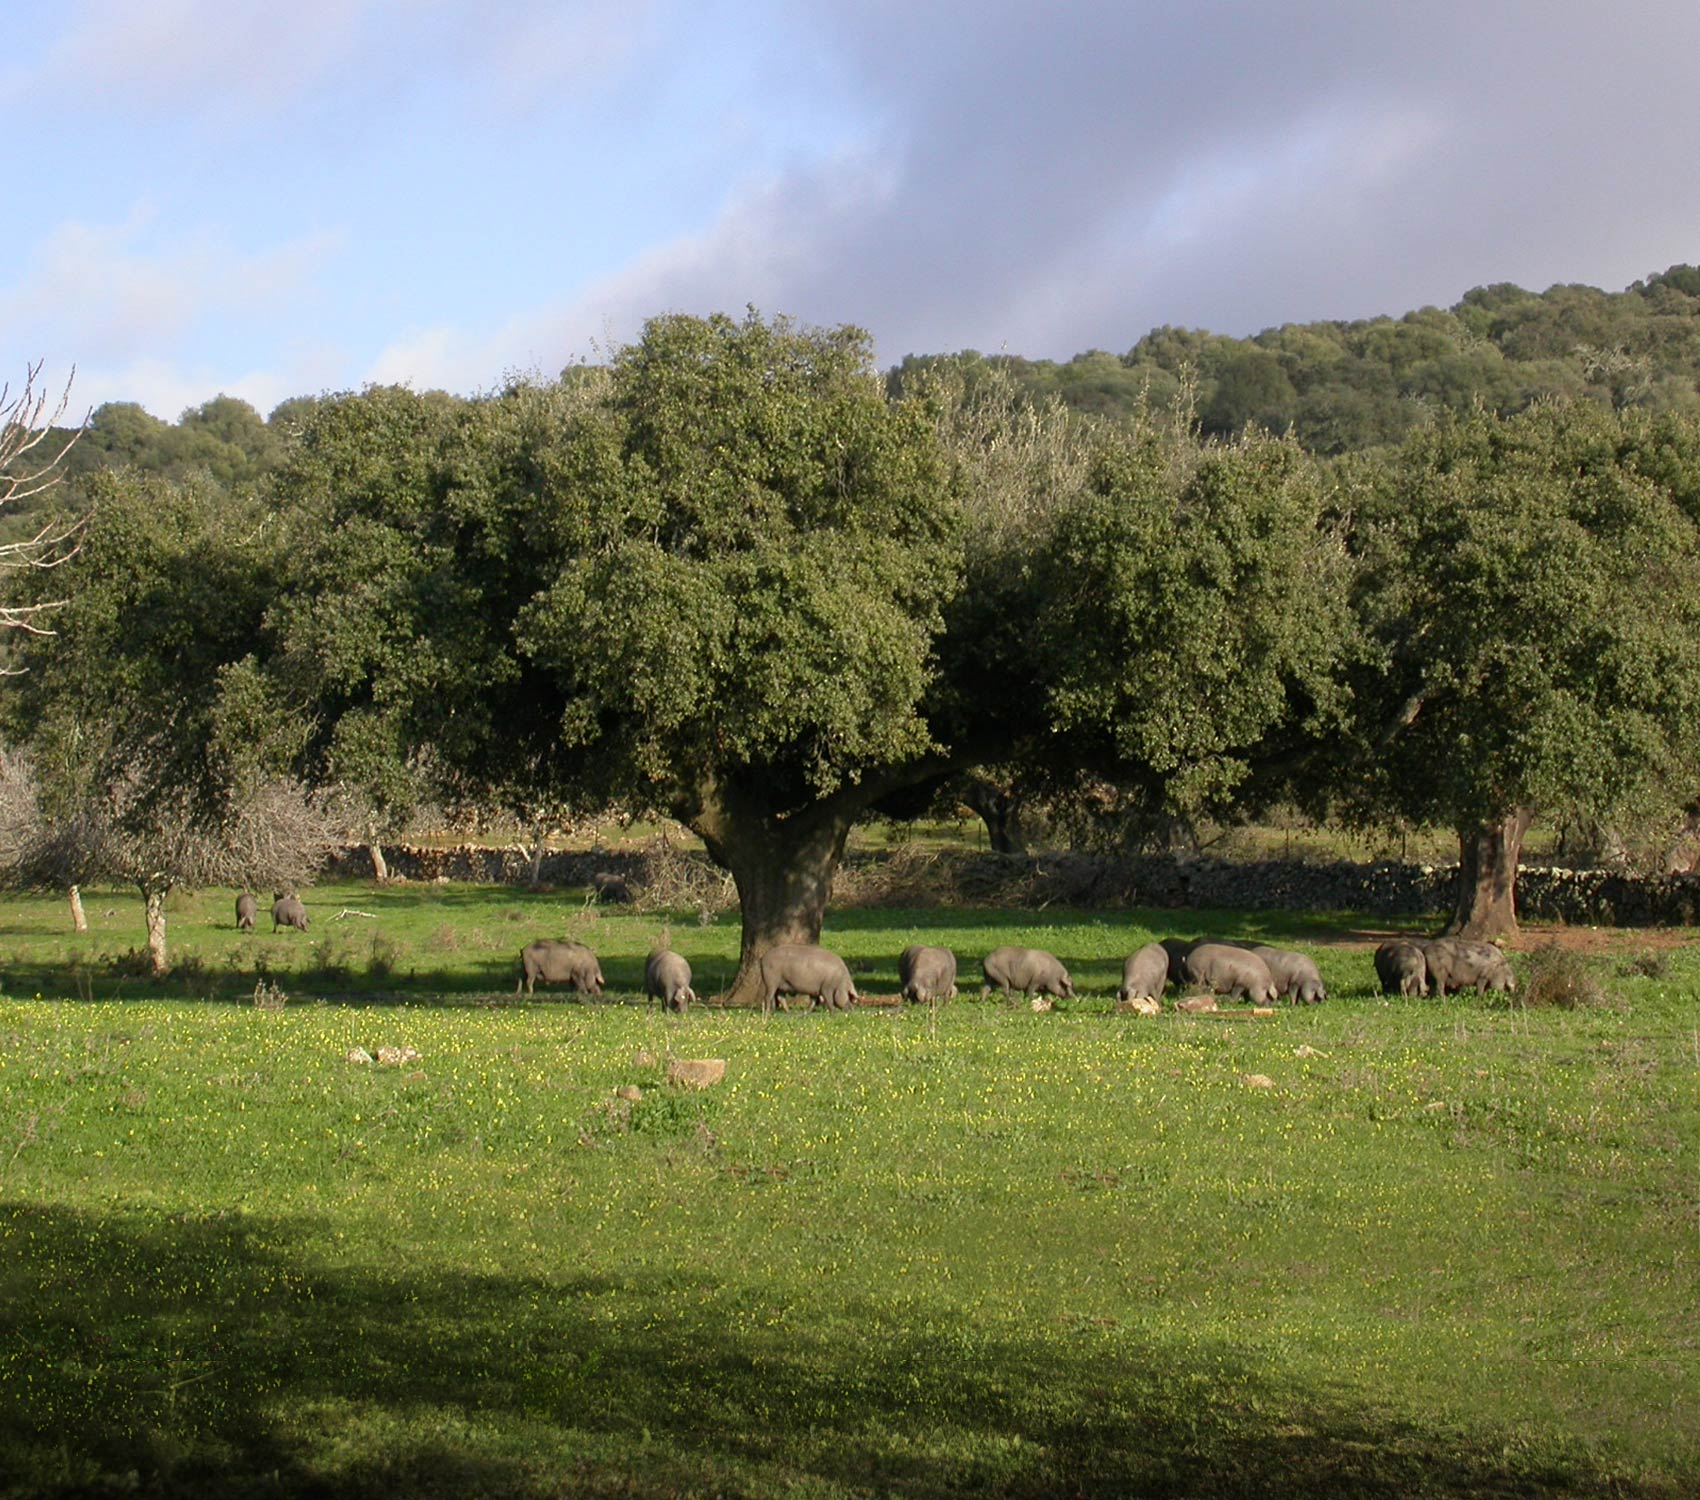 Iberian pigs in the pasture